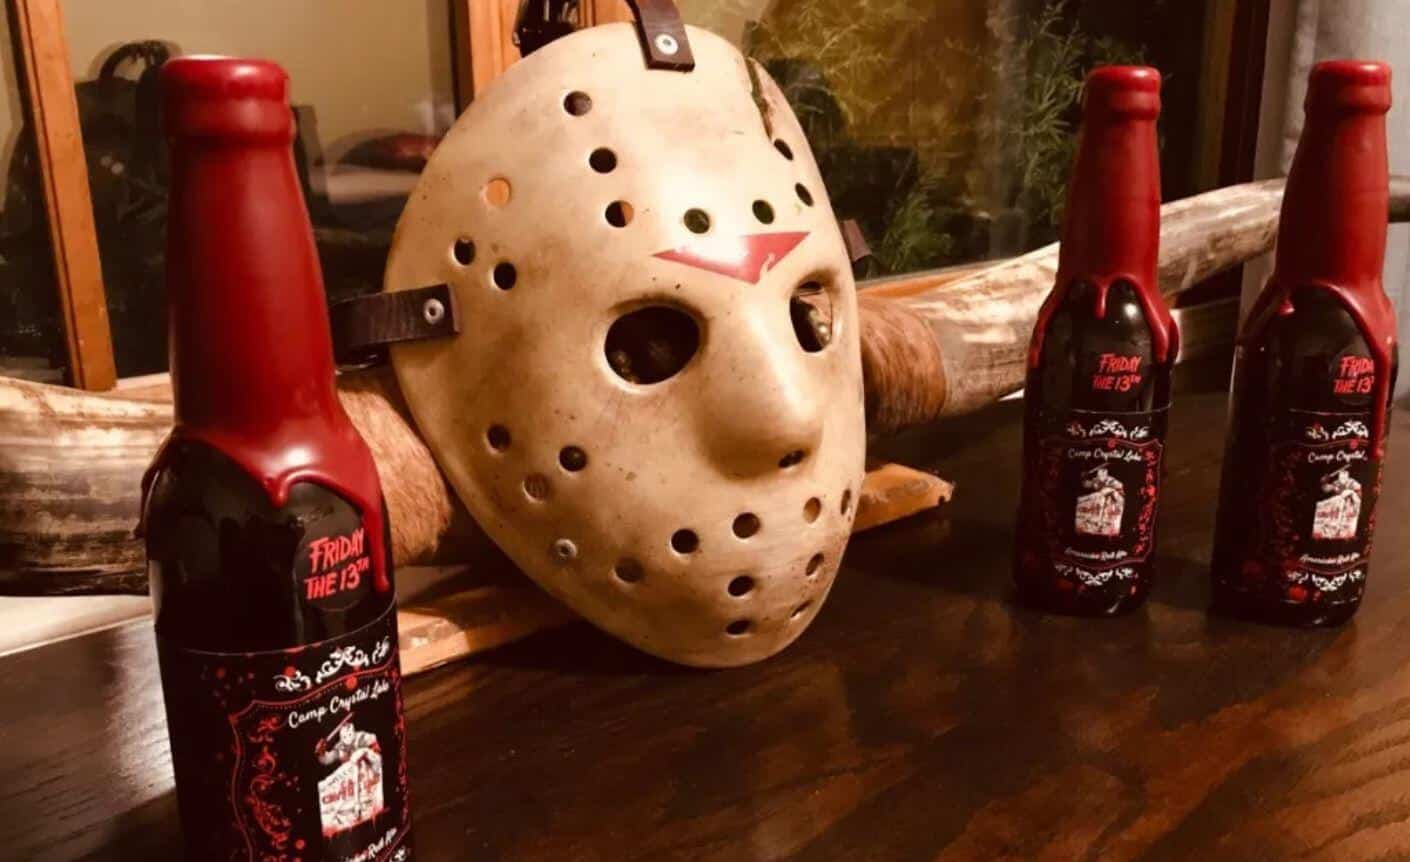 Friday the 13th Beer